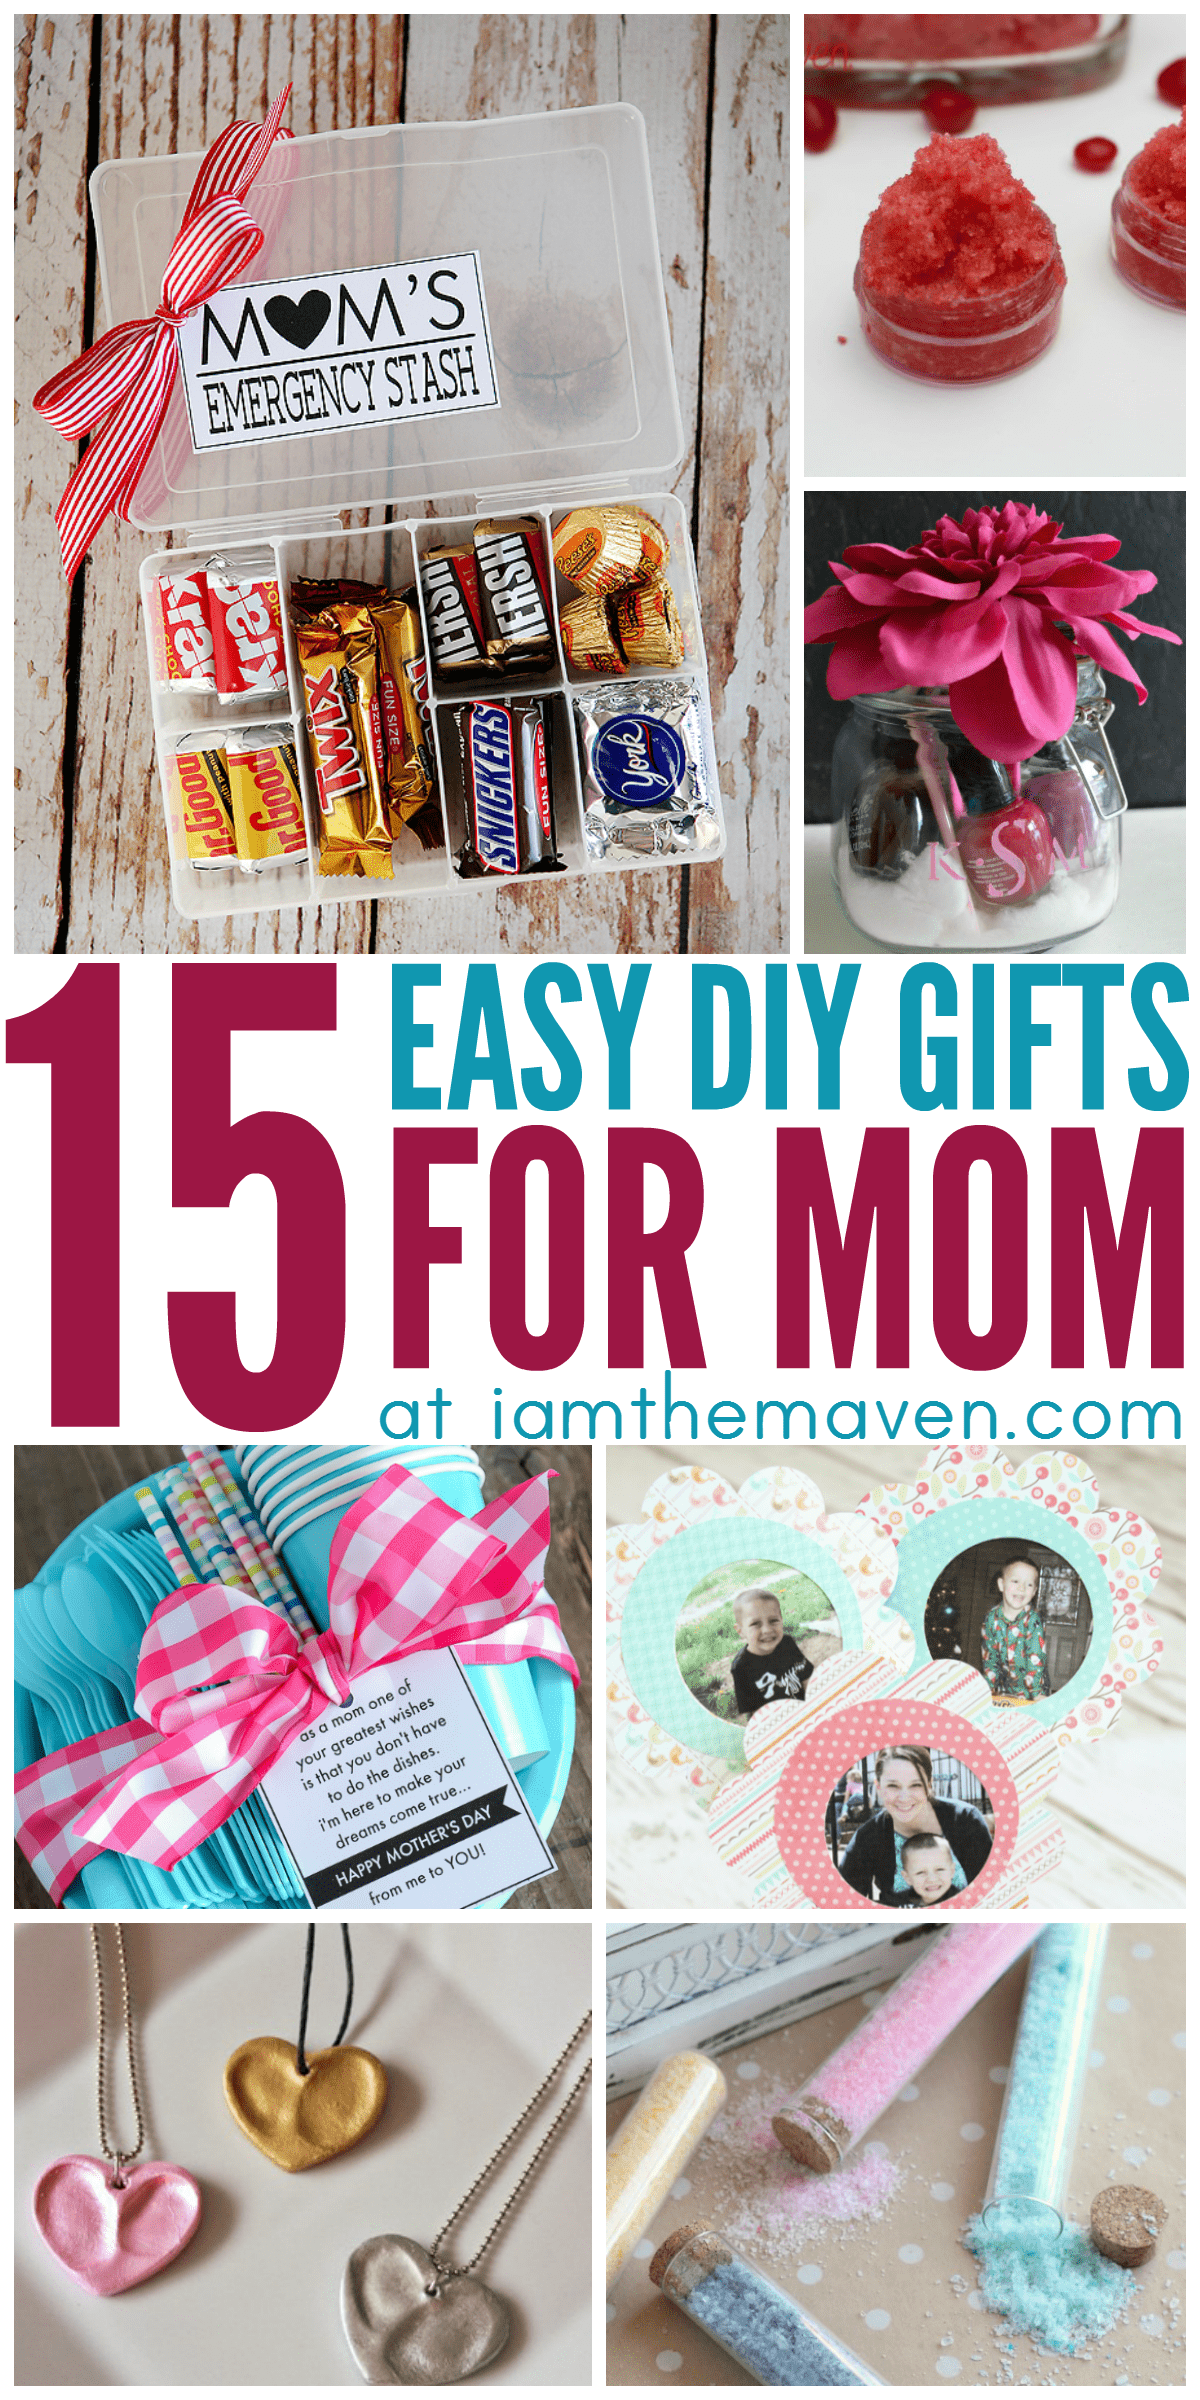 Mother's Day will be here before you know it. Instead of running to the mall for the perfect gift for mom, put the kids to work and get craft instead! These homemade gifts for mom are sure to please!